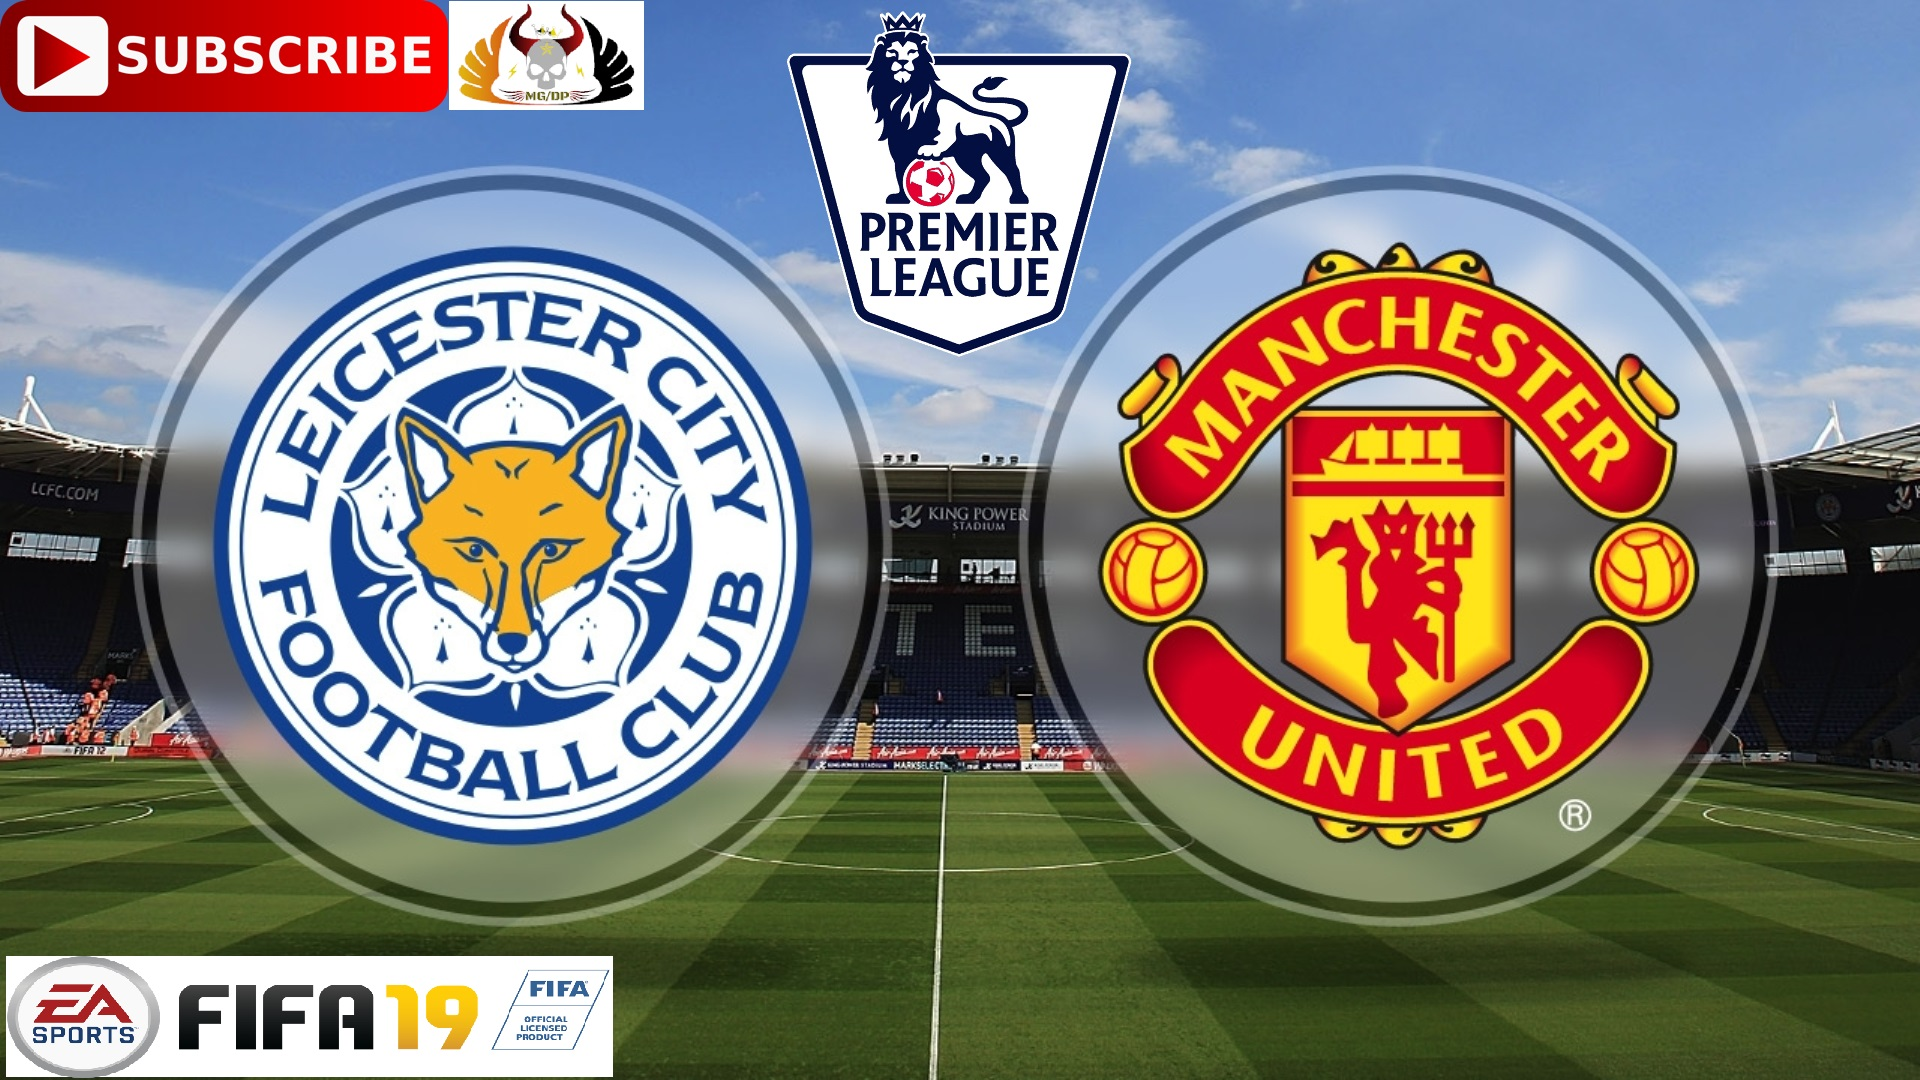 Leicester City Vs Manchester United - Leicester City Vs Tottenham Hotspur , HD Wallpaper & Backgrounds